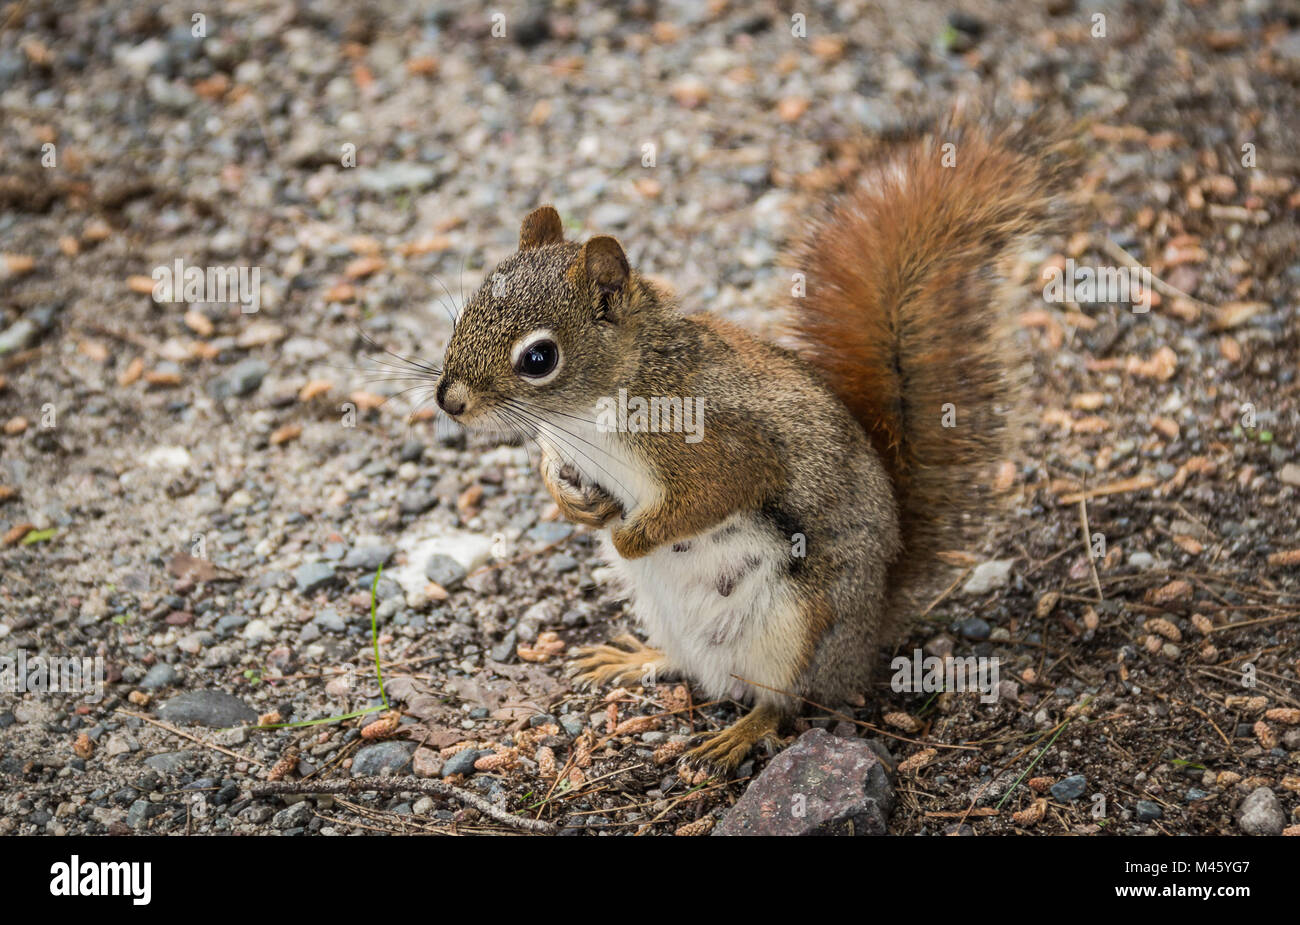 A  Grey Squirell Standing on Hind Feet - Stock Image